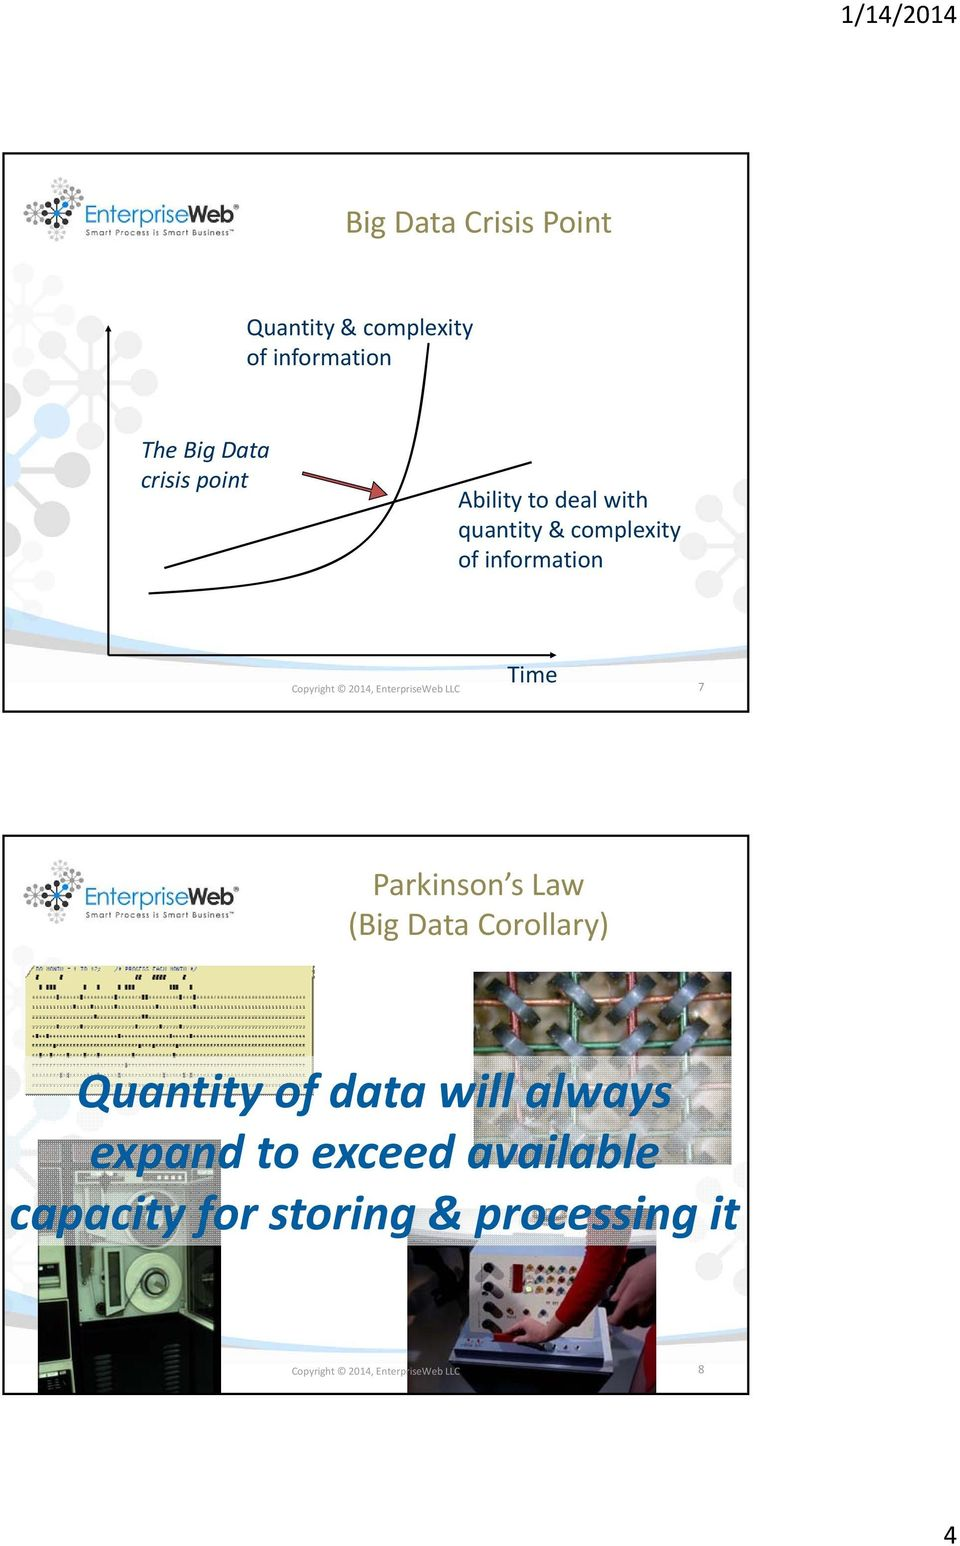 EnterpriseWeb LLC 7 Parkinson s Law (Big Data Corollary) Quantity of data will always